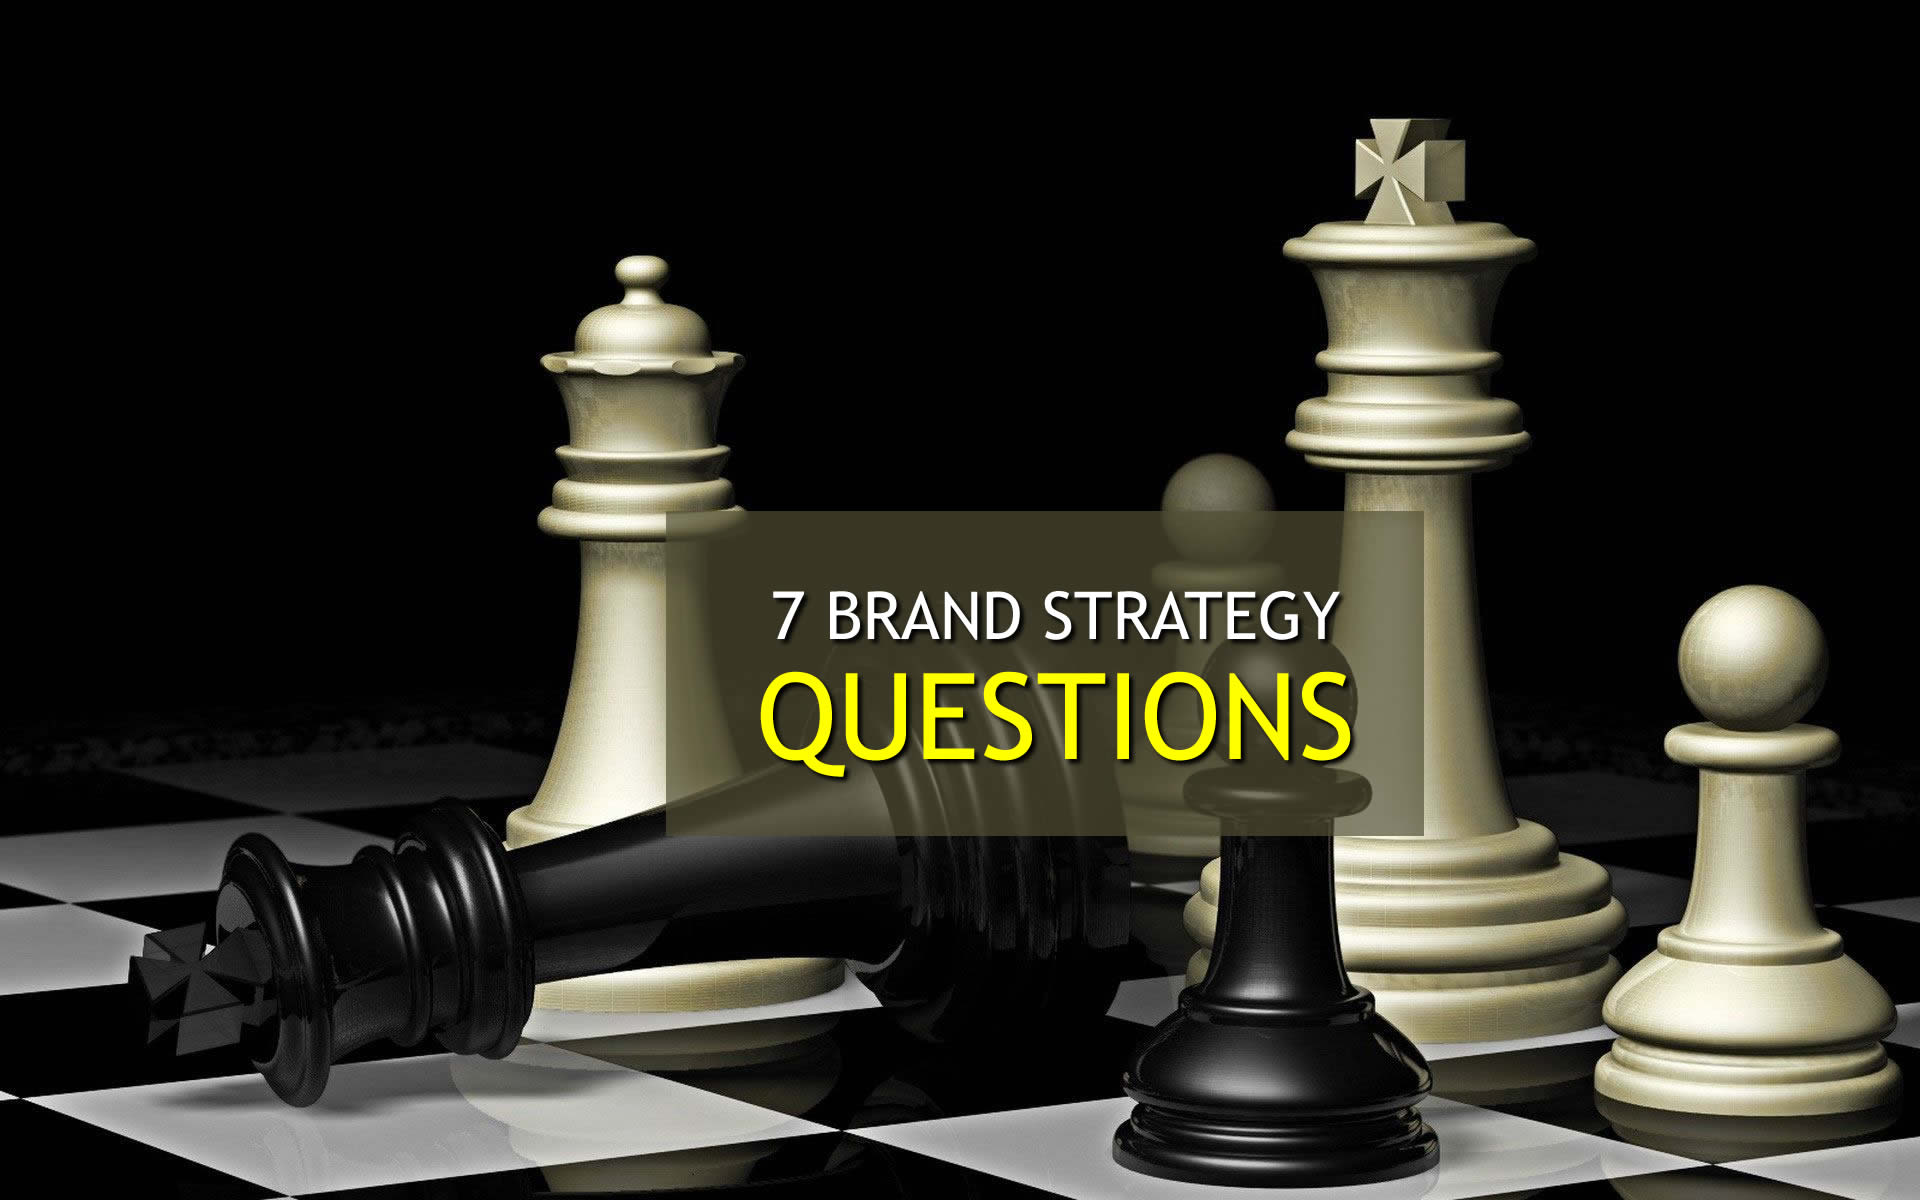 7 Brand Strategy Questions